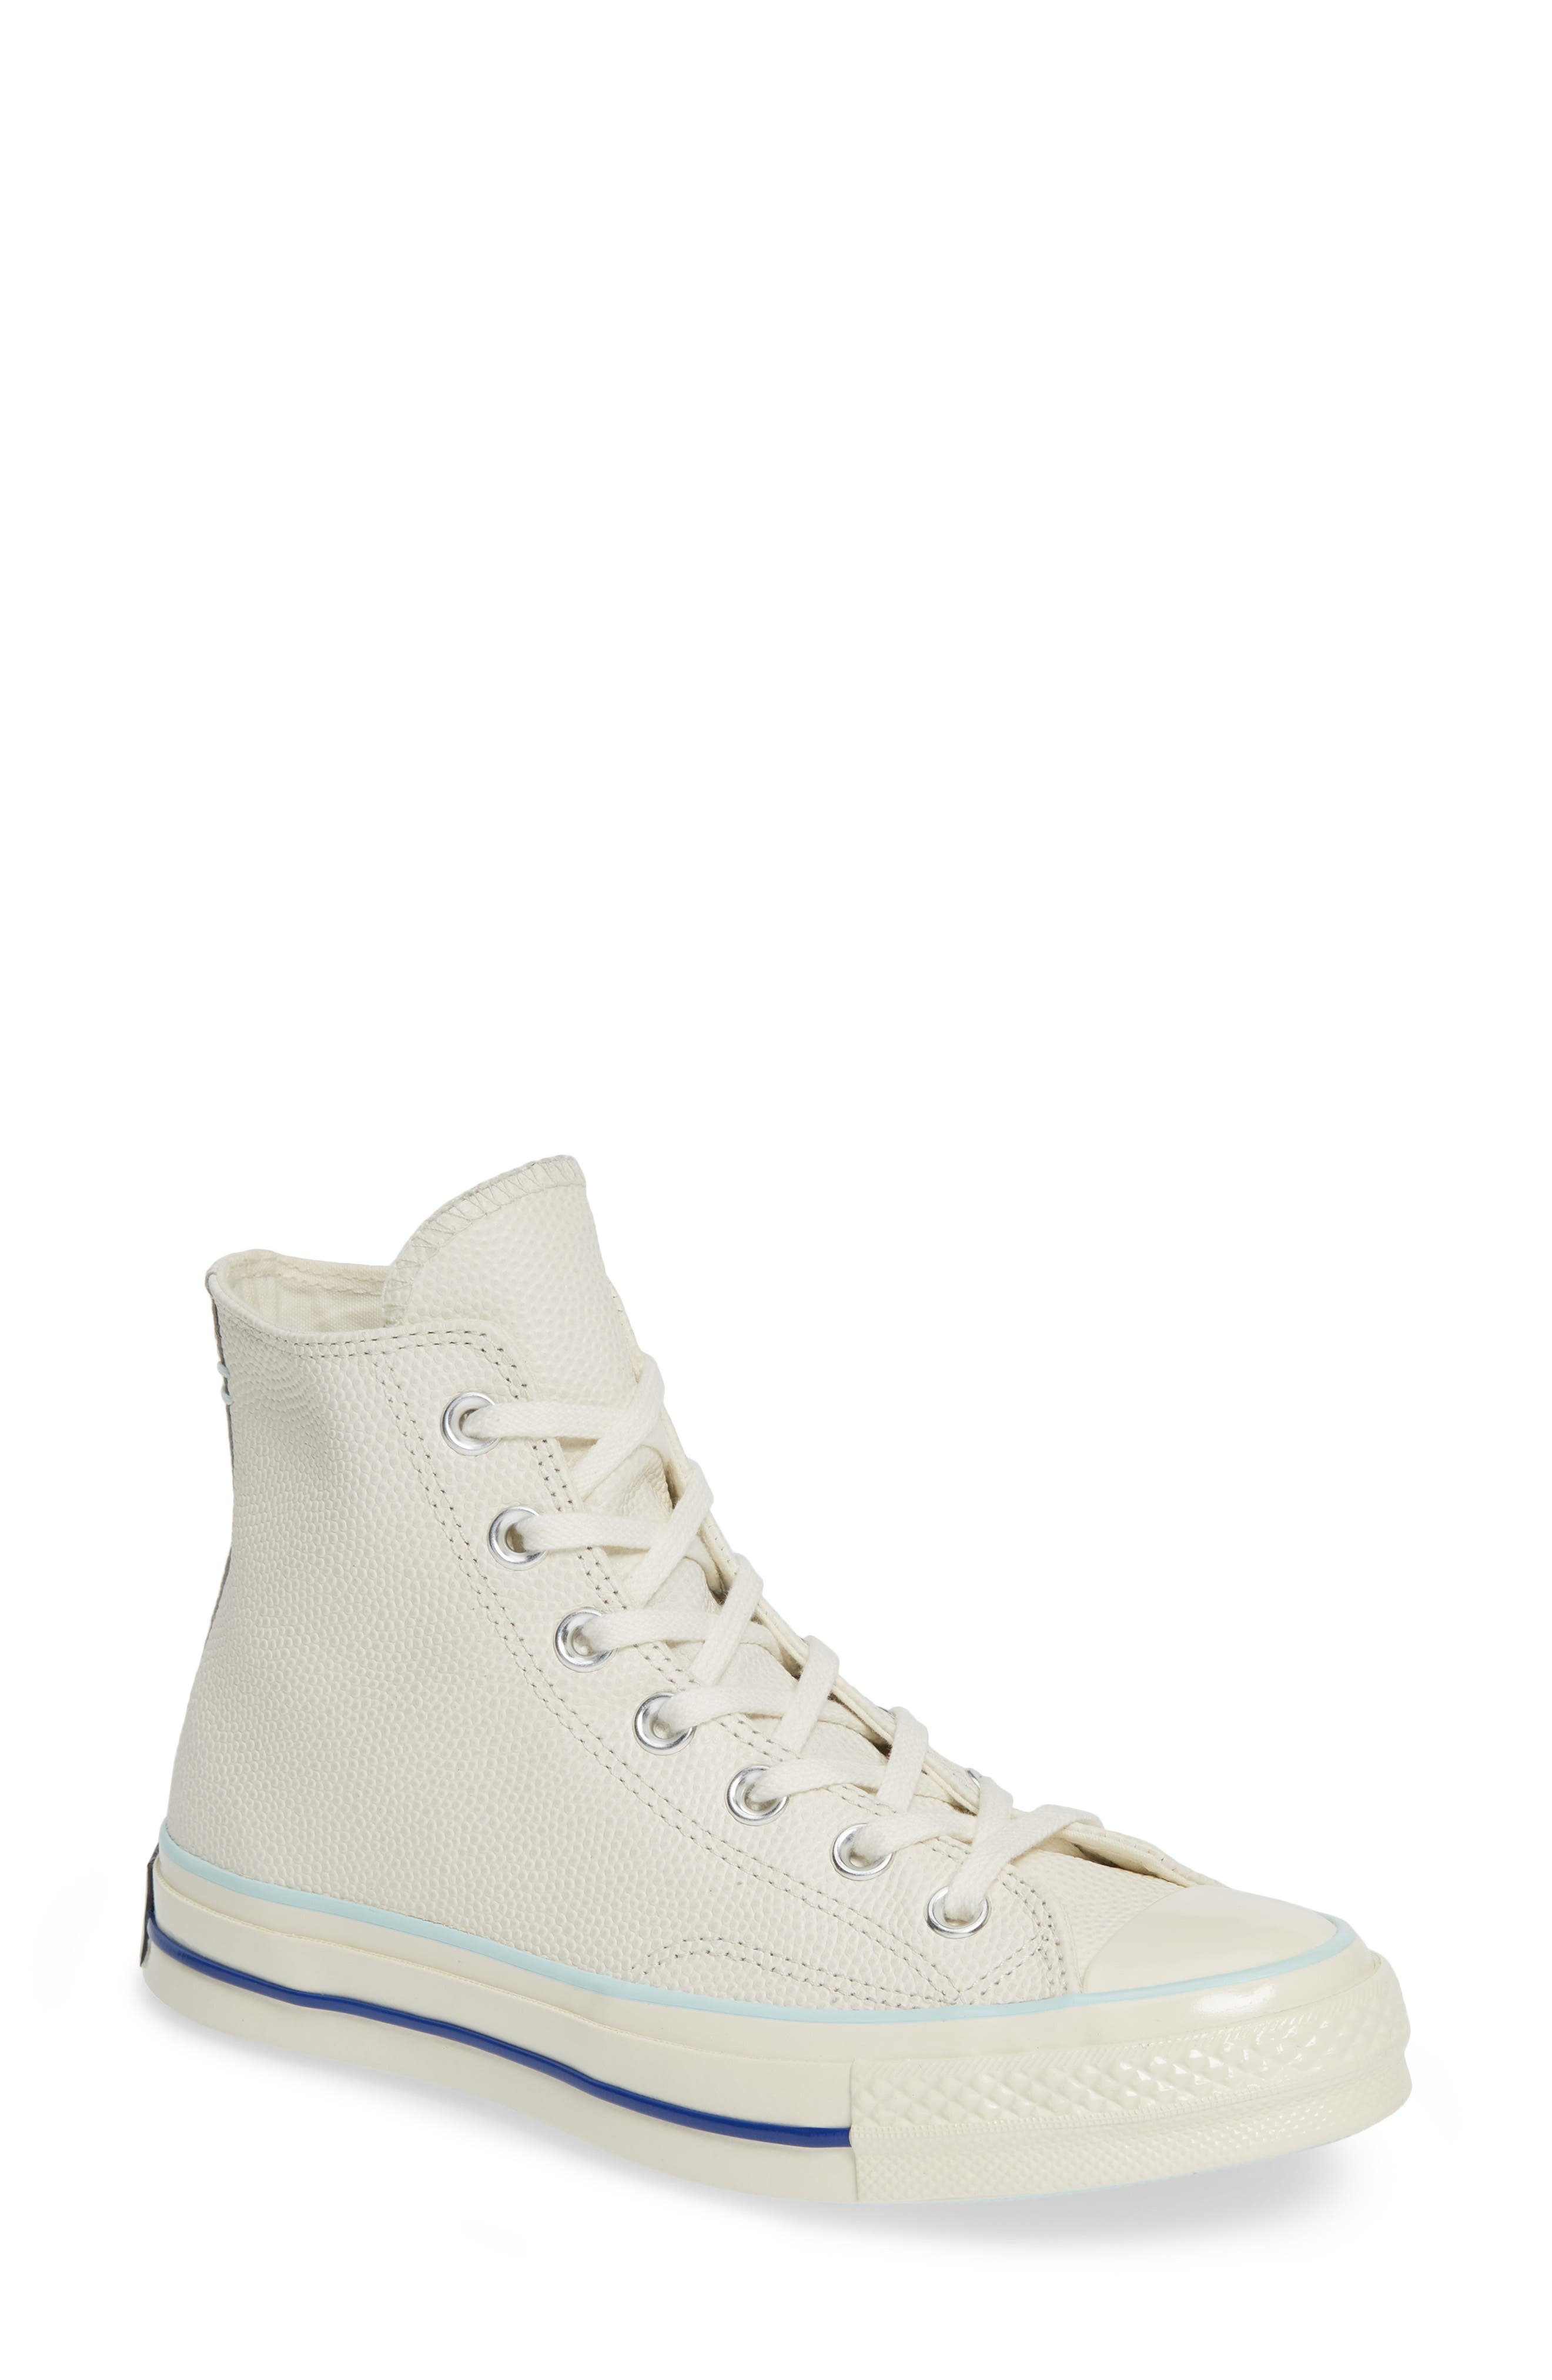 Converse Chuck Taylor All Star 70 High Top Leather Sneaker, Grey